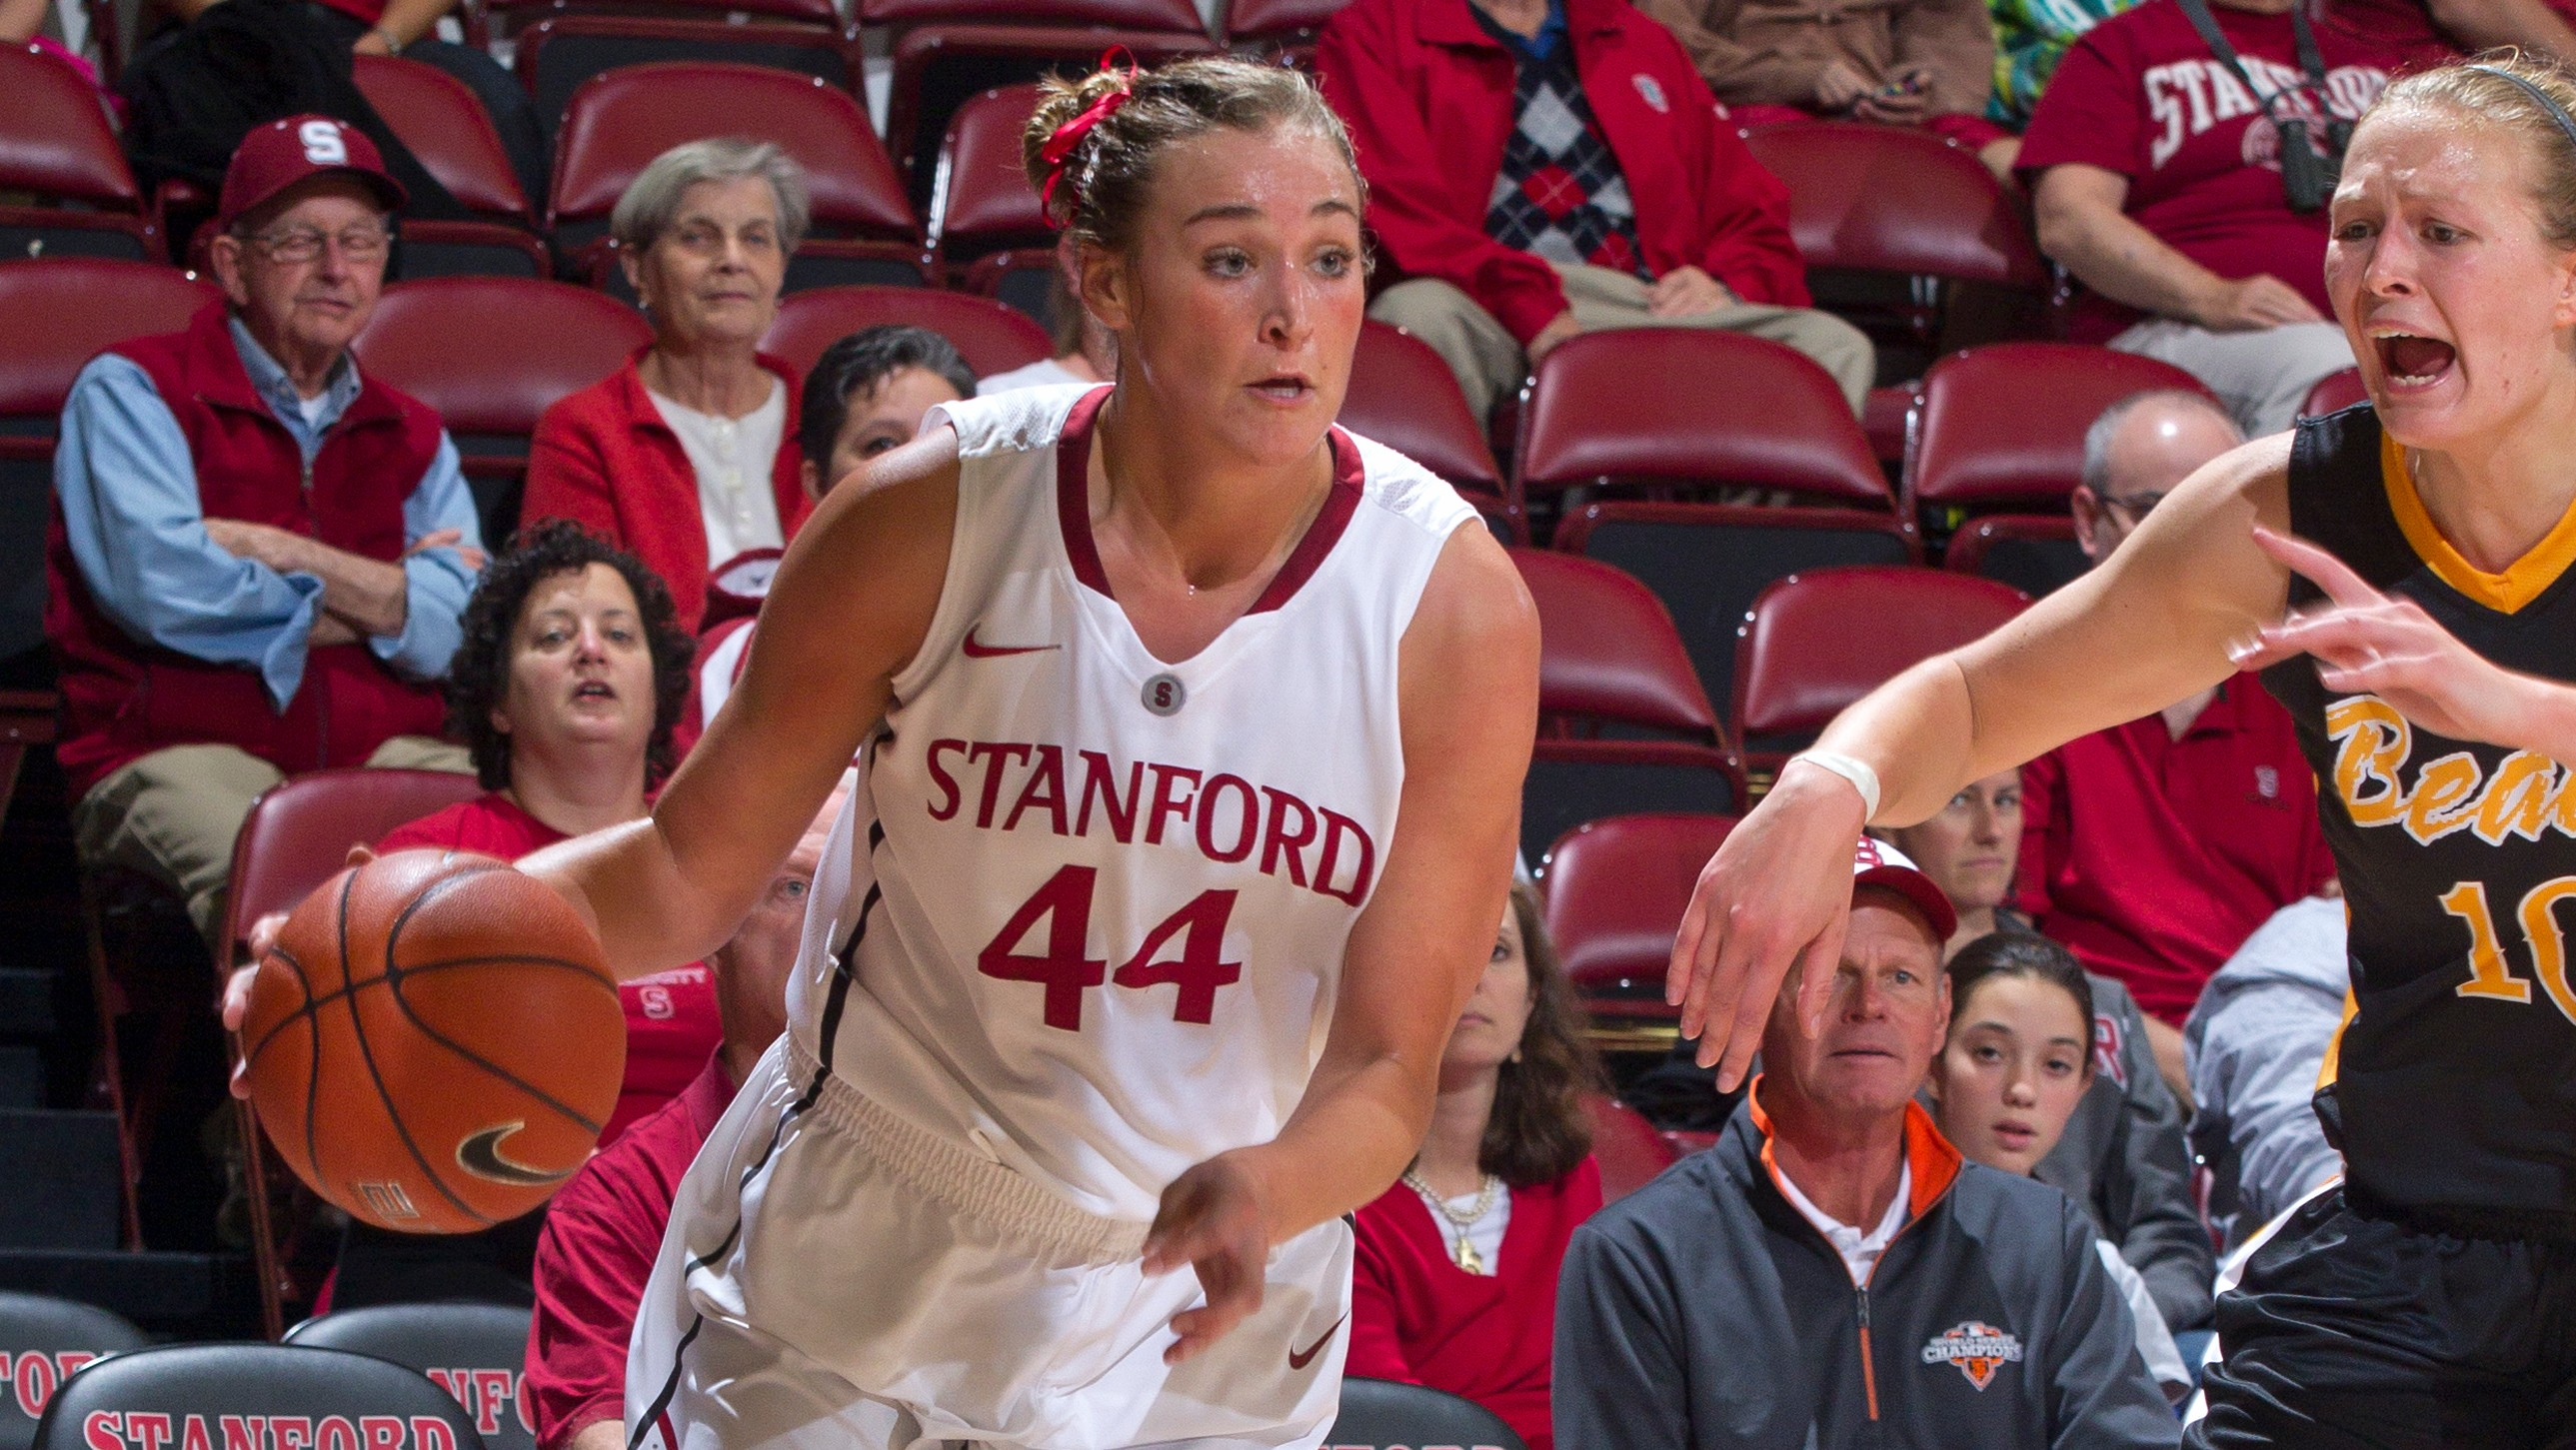 Seattle Storm signs former Stanford player Joslyn Tinkle